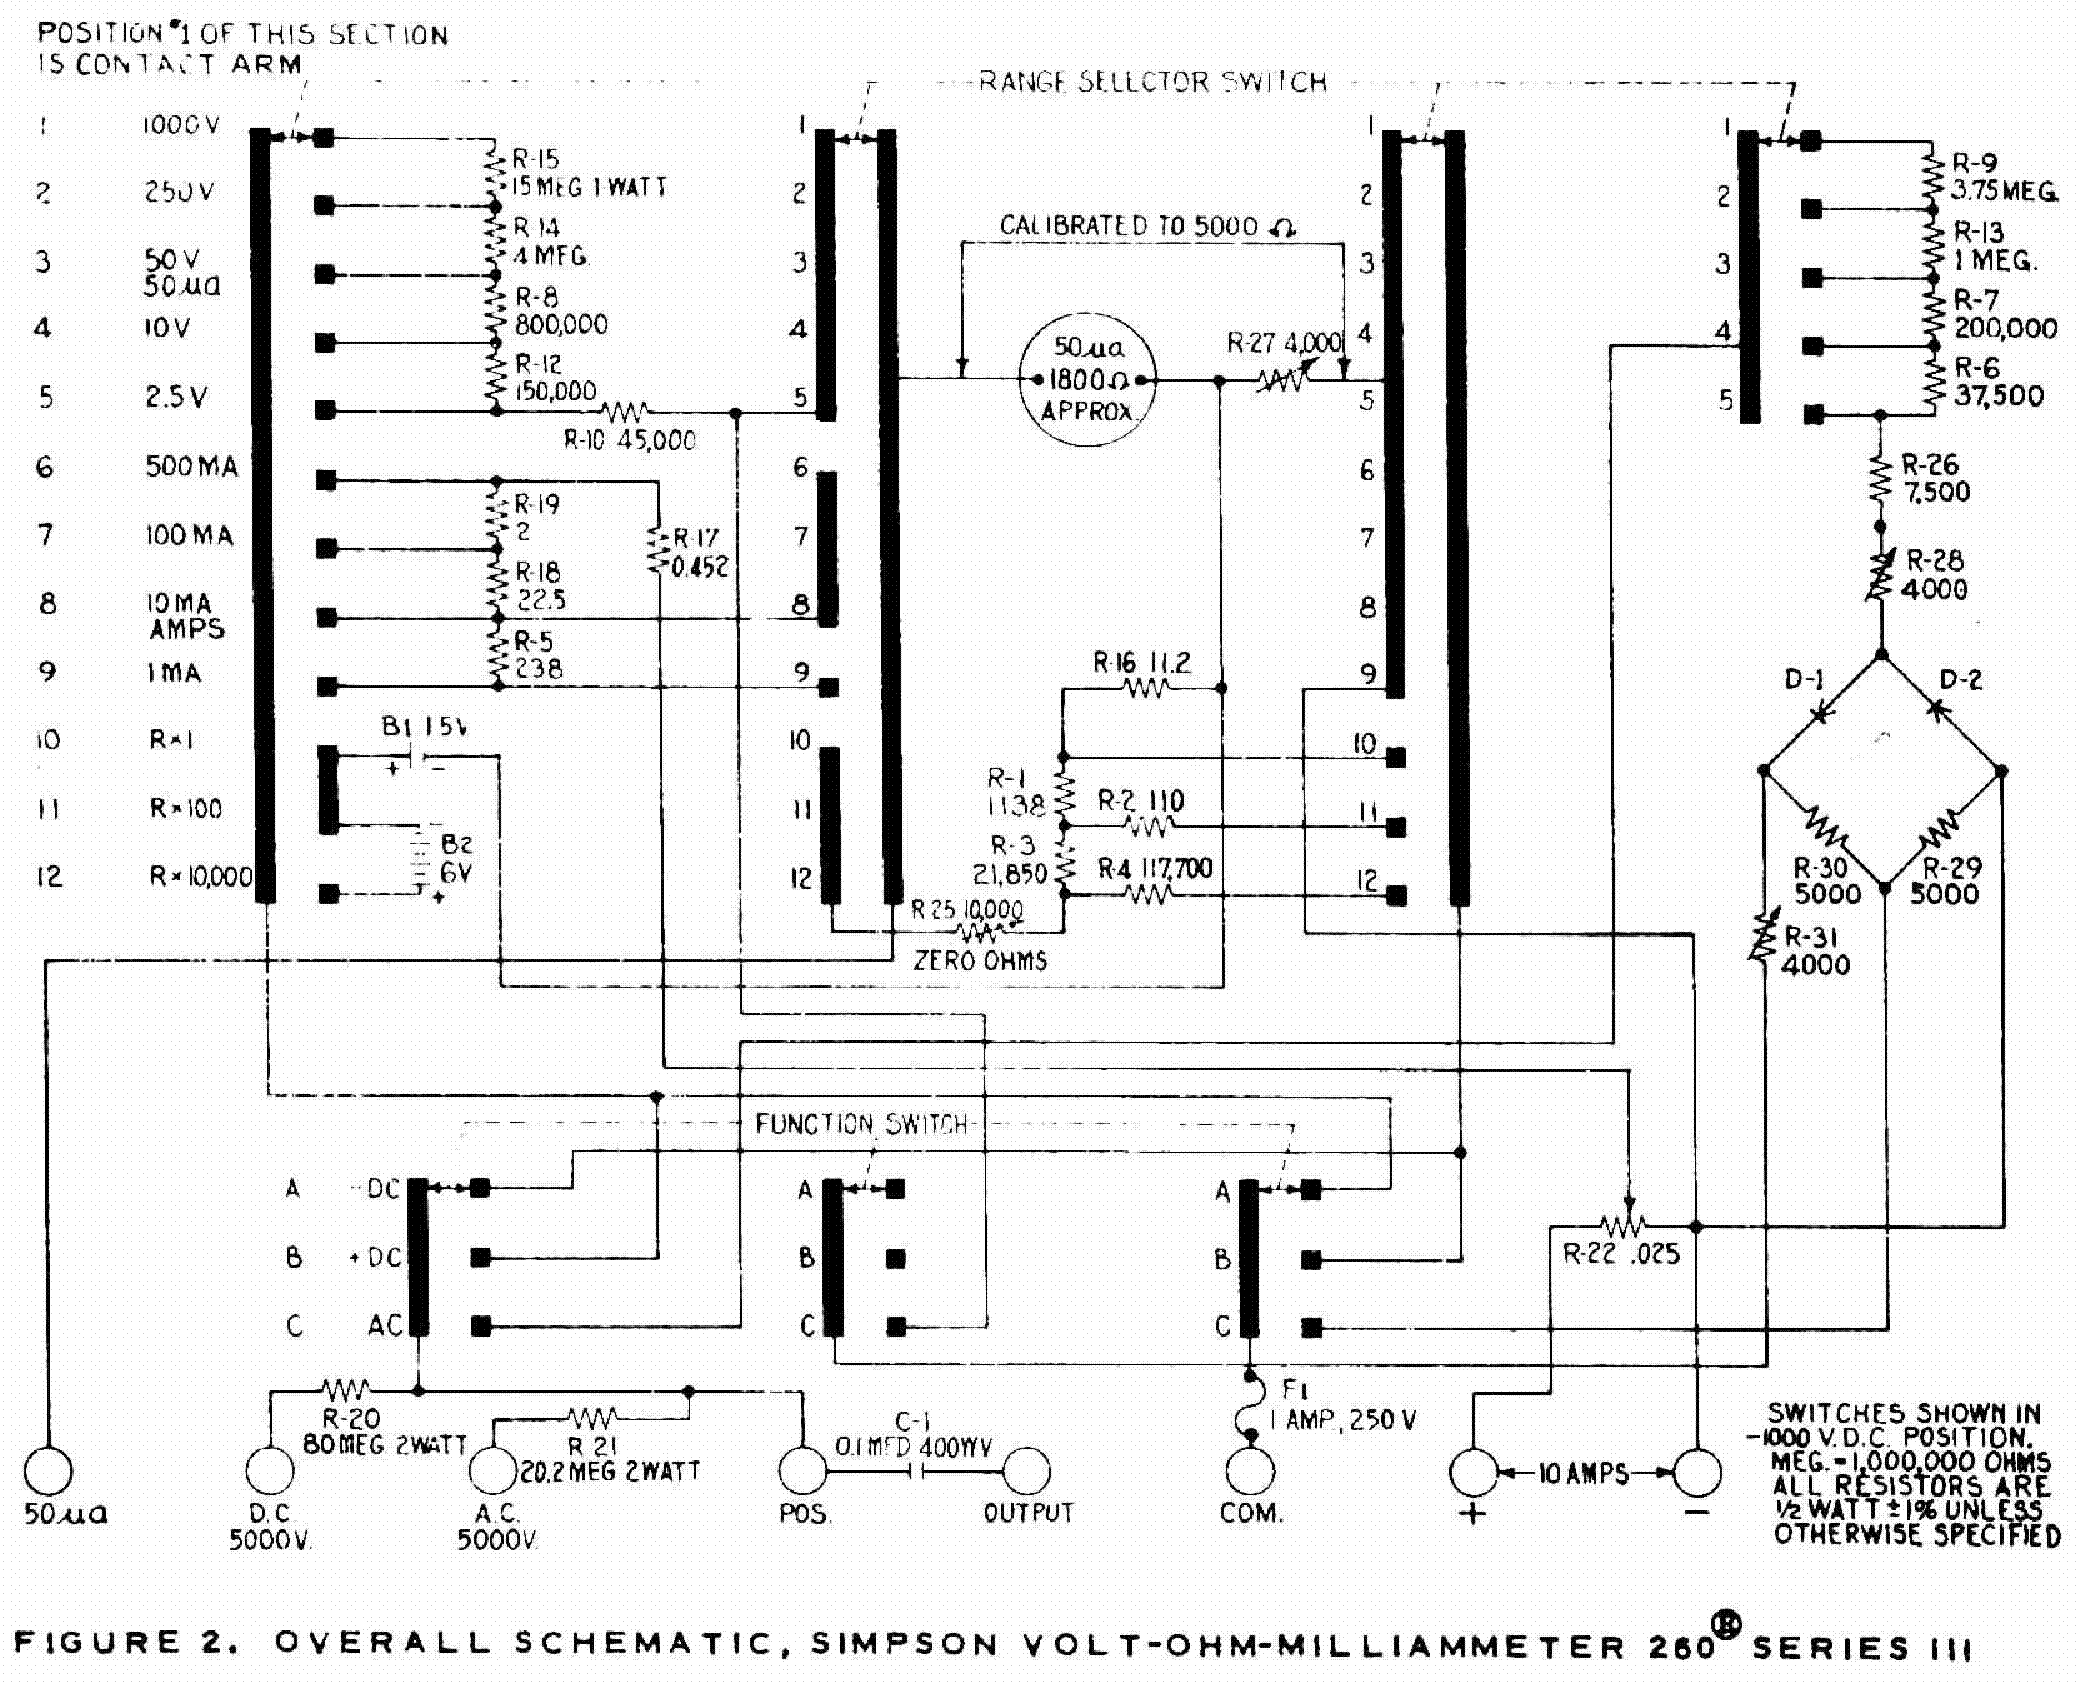 Electrical Wiring Diagrams For A Simpson 260 Multimeter - 2.5 ... on how a multimeter works diagram, crt monitor schematic diagram, tachometer schematic diagram, digital ohm meter schematic, msd digital 7 wiring diagram, schematic wiring diagram, digital tuner schematic, digital scale diagram,